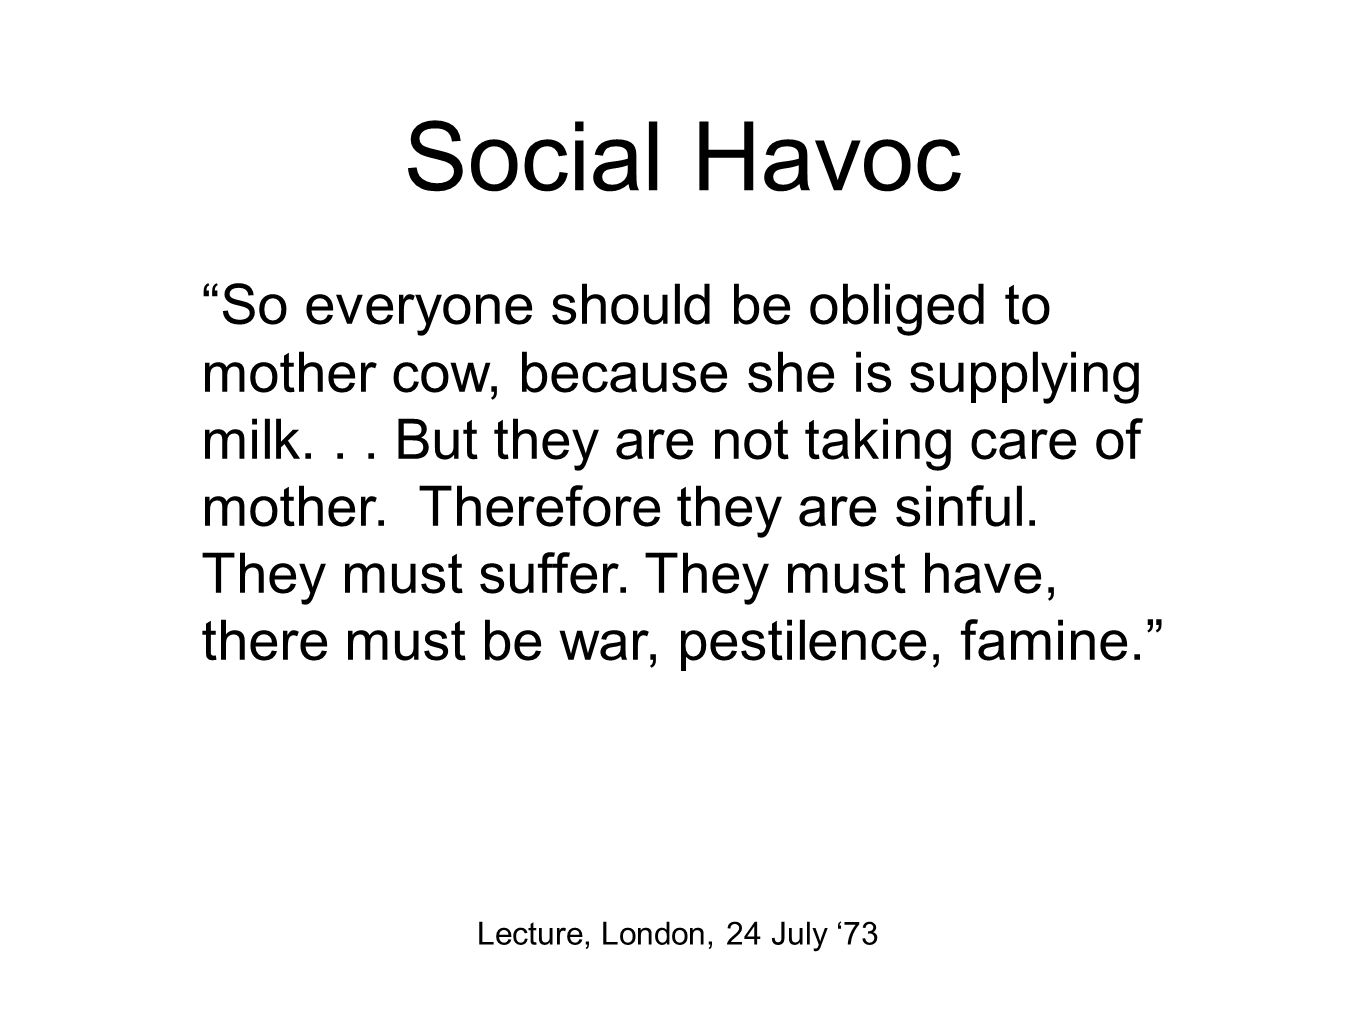 Social Havoc Lecture, London, 24 July '73 So everyone should be obliged to mother cow, because she is supplying milk...